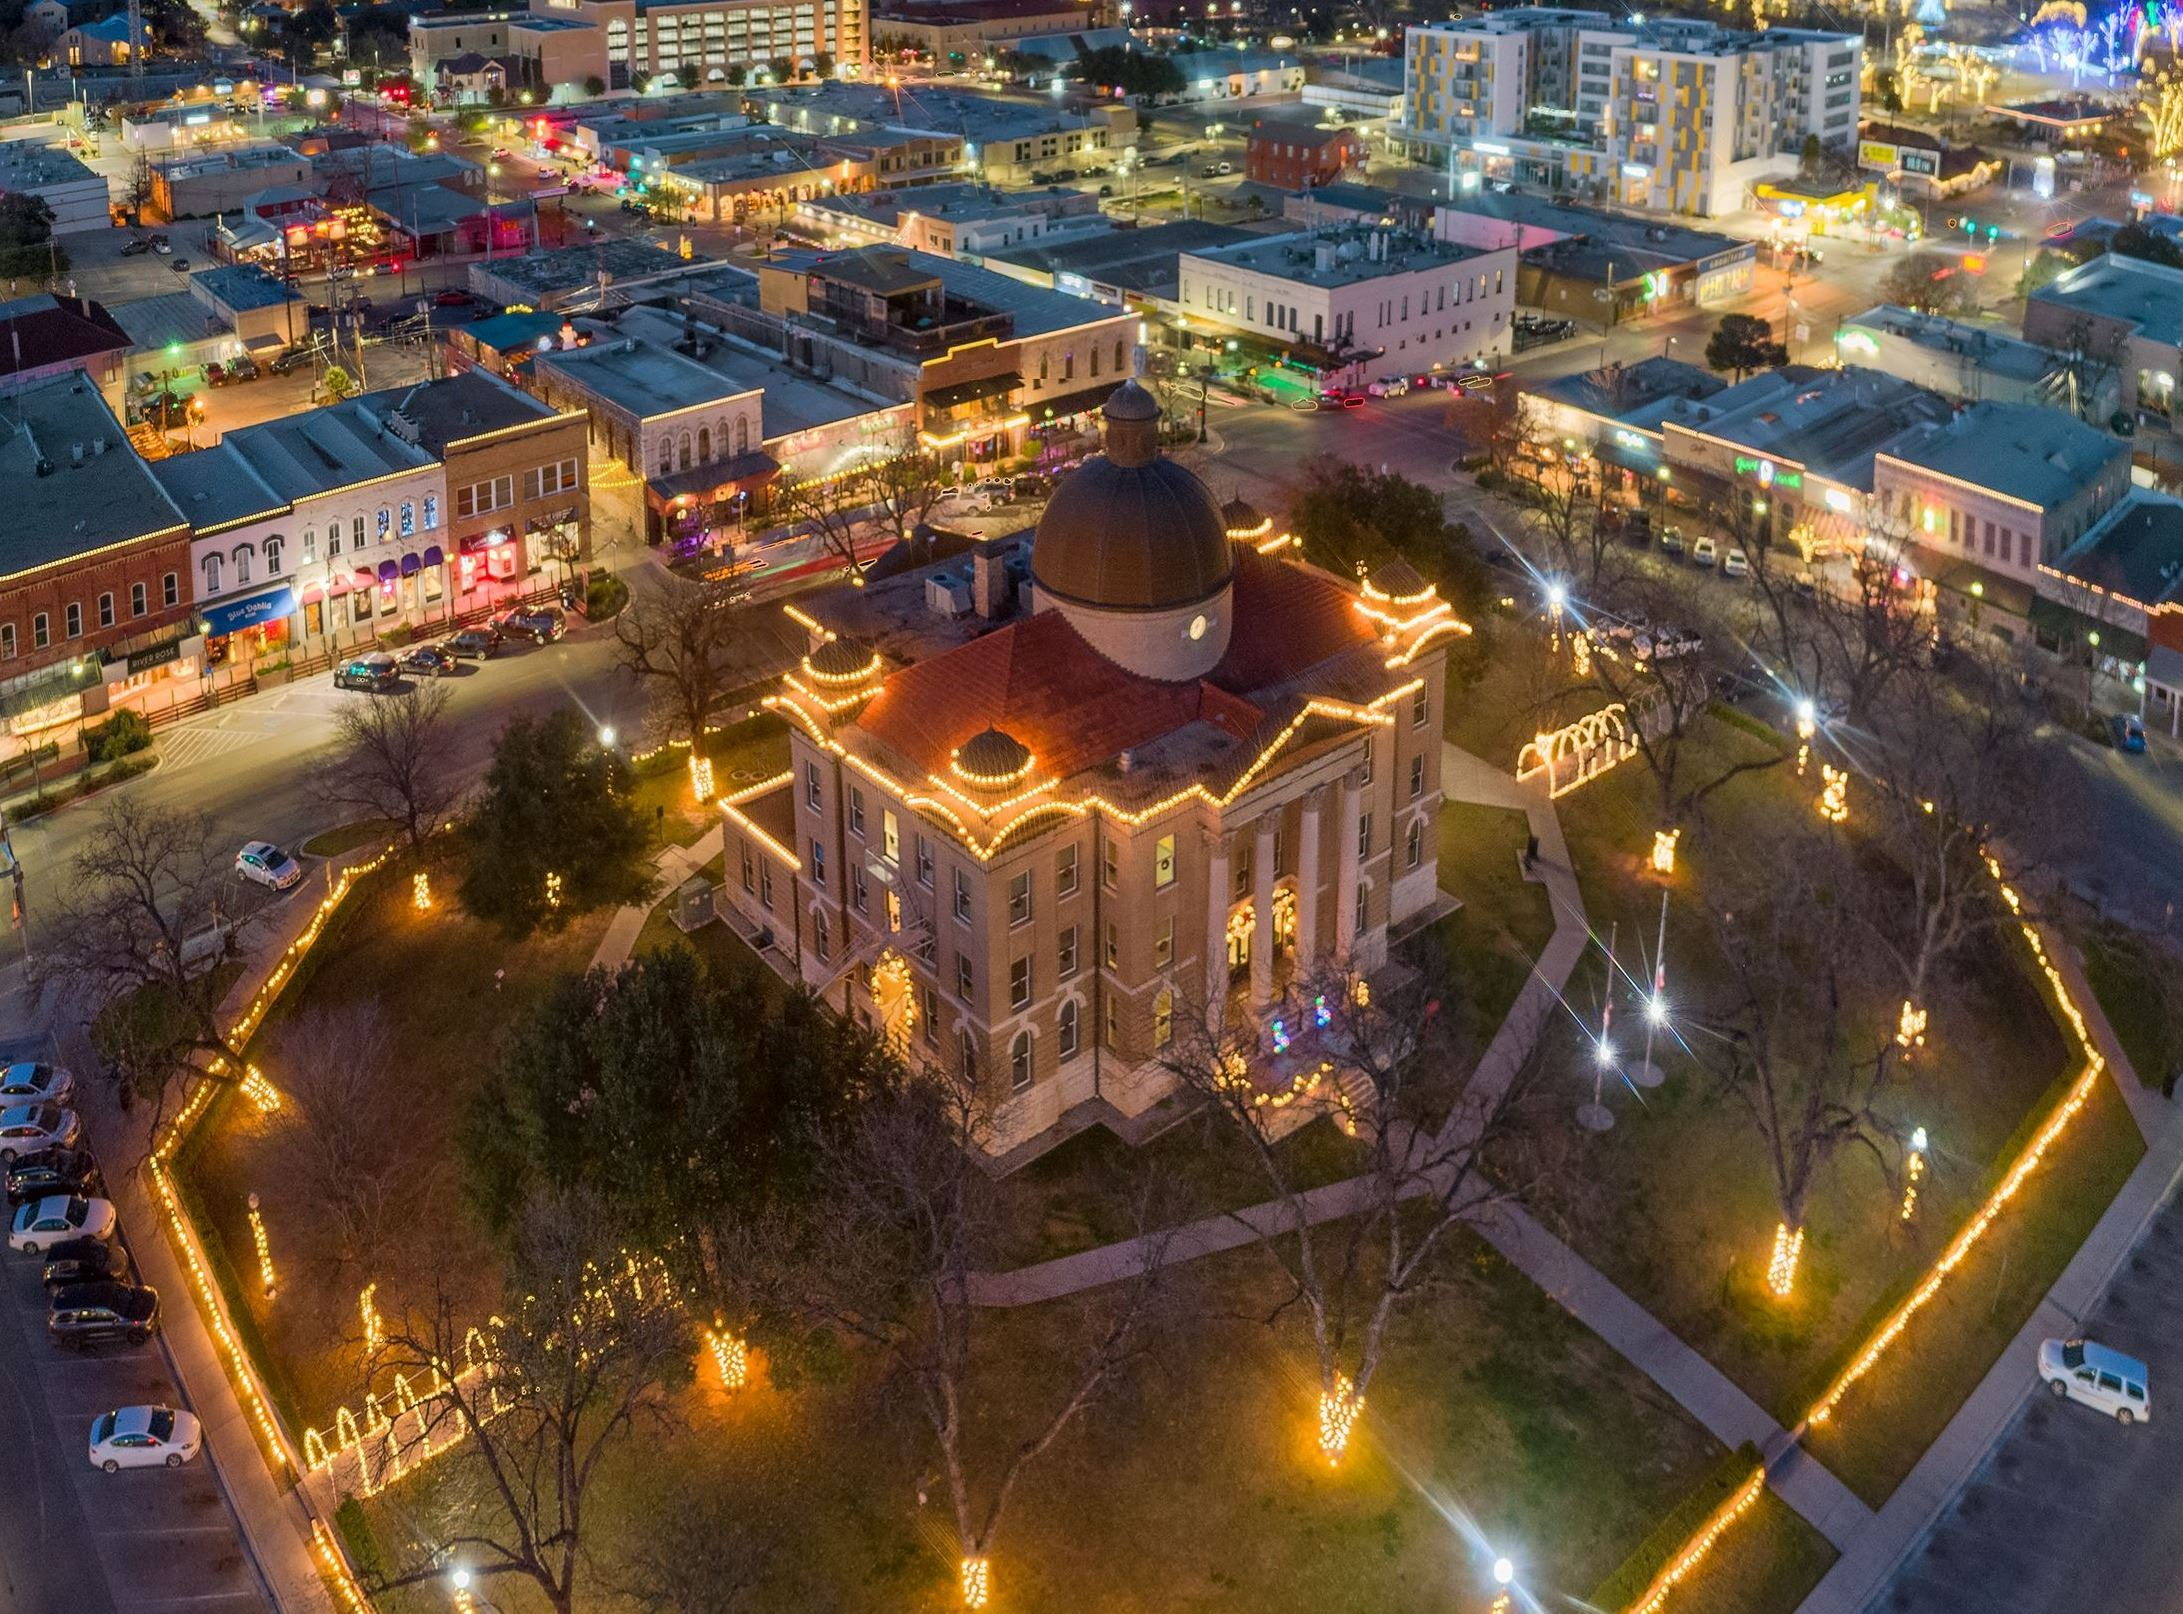 Aerial photo taken of Historic Hays County Courthouse with holiday lighting installed